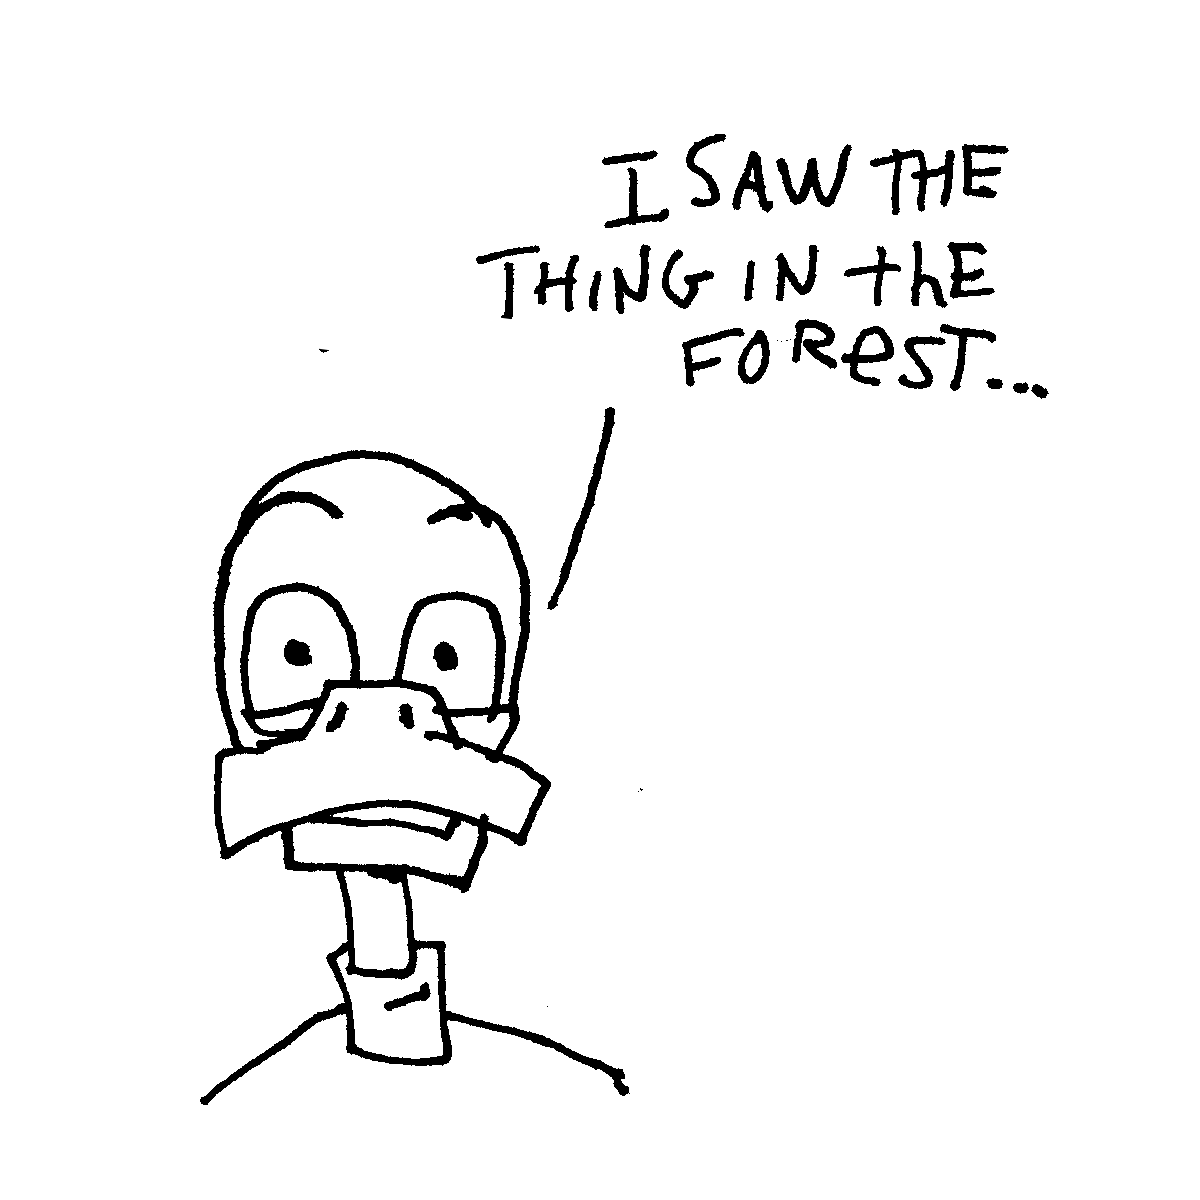 duck forest thing doodle cartoon